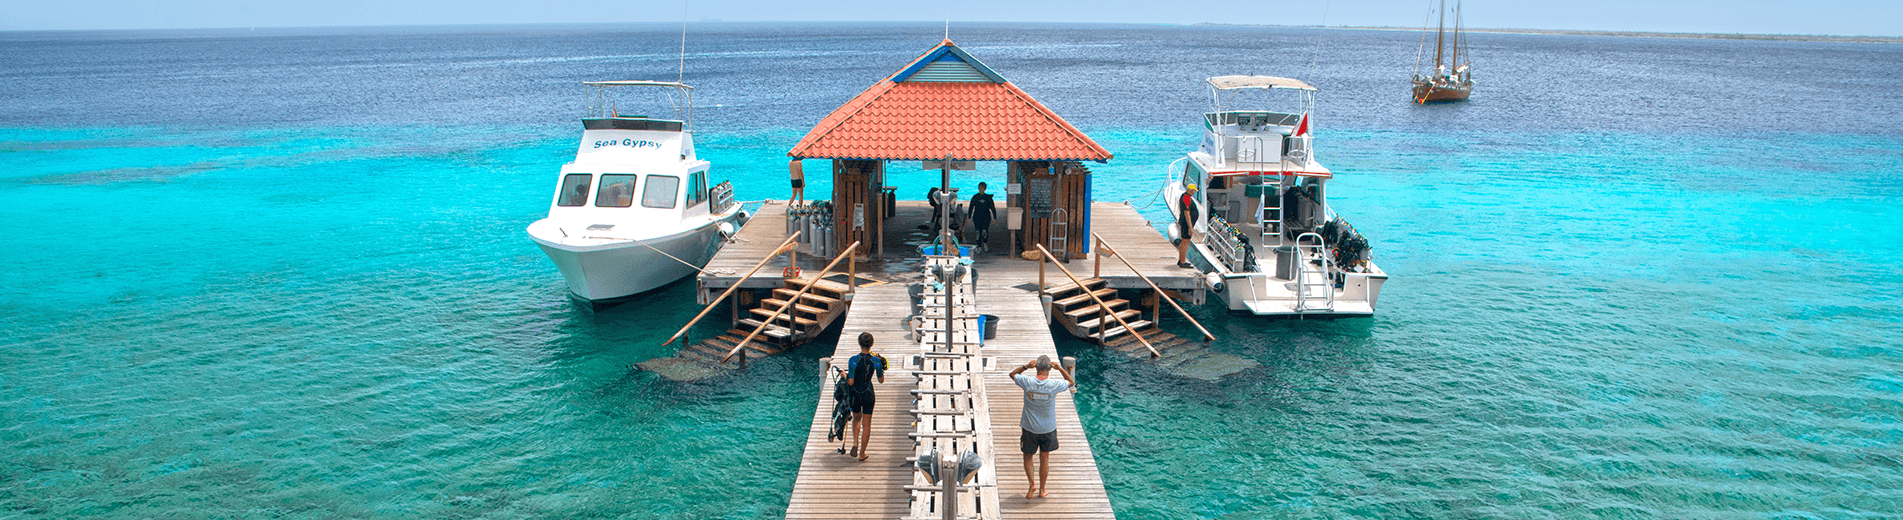 Bonaire is one of the top diving destinations in the world making the island is truly a diver's paradise. Explore the pristine waters and coral reefs by day, and enjoy a relaxed atmosphere by night when you stay at Divi Flamingo Beach Resort & Casino.